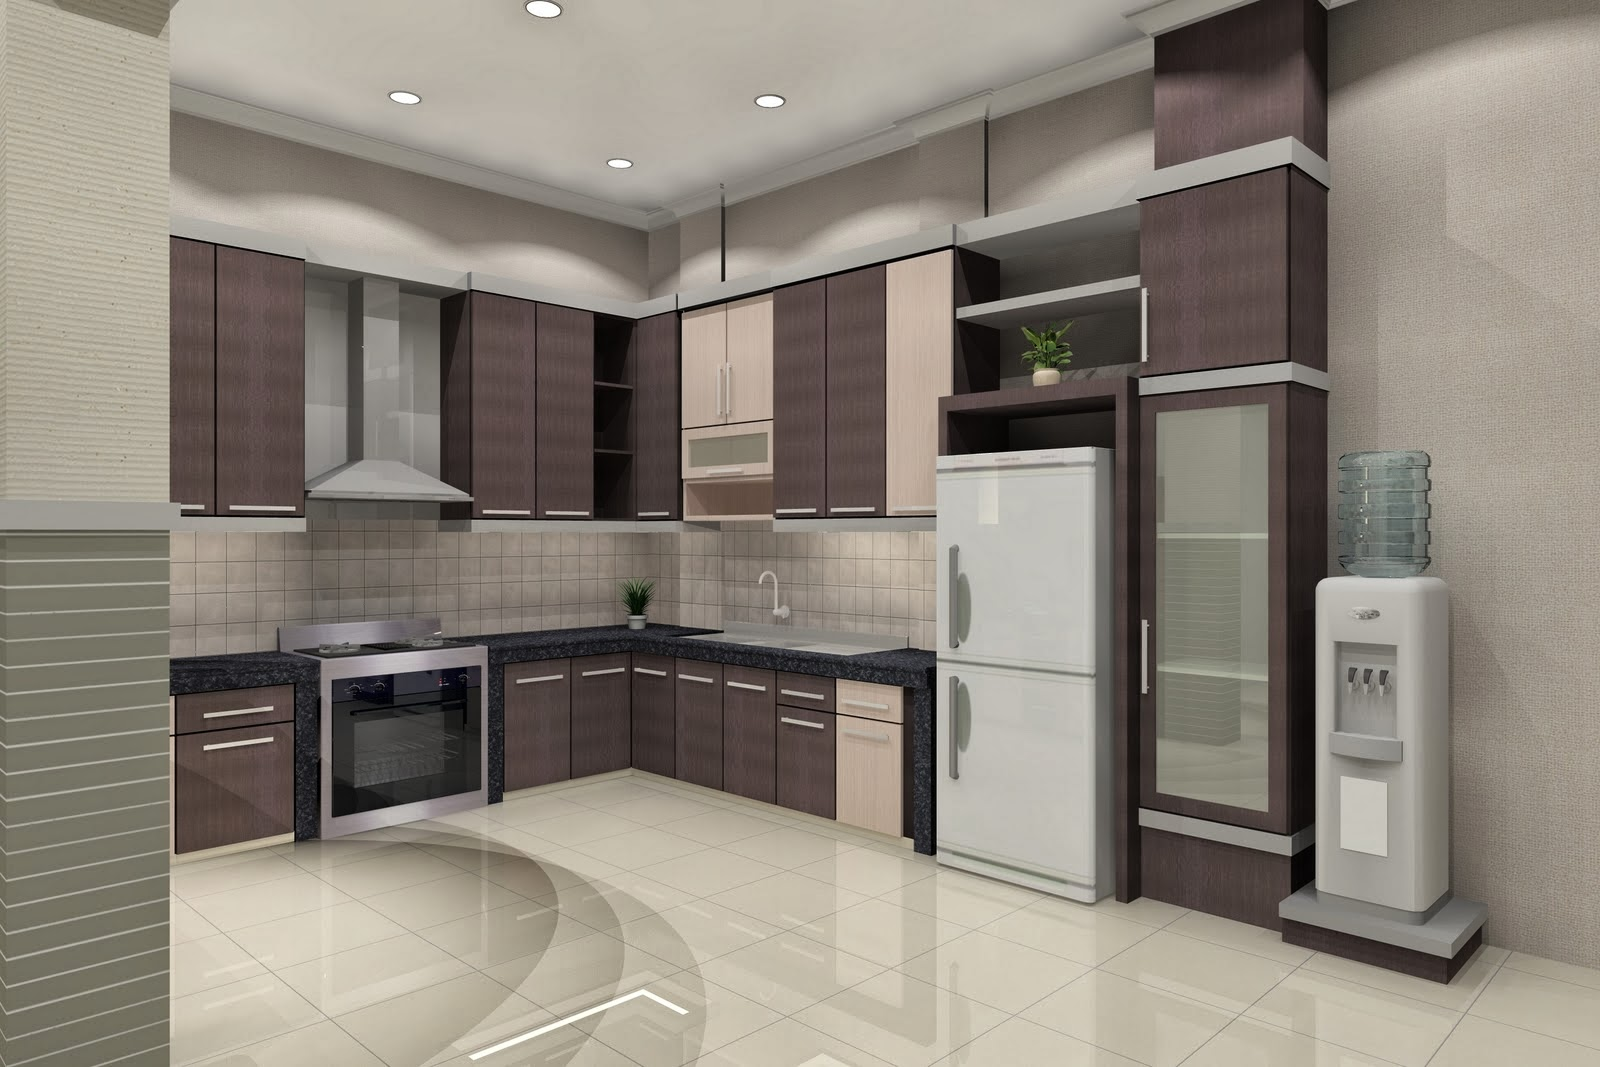 Modern Kitchen Ideas 2014 Impressive Modern Kitchen Design For Minimalist House 2014  Home Design Idea Review